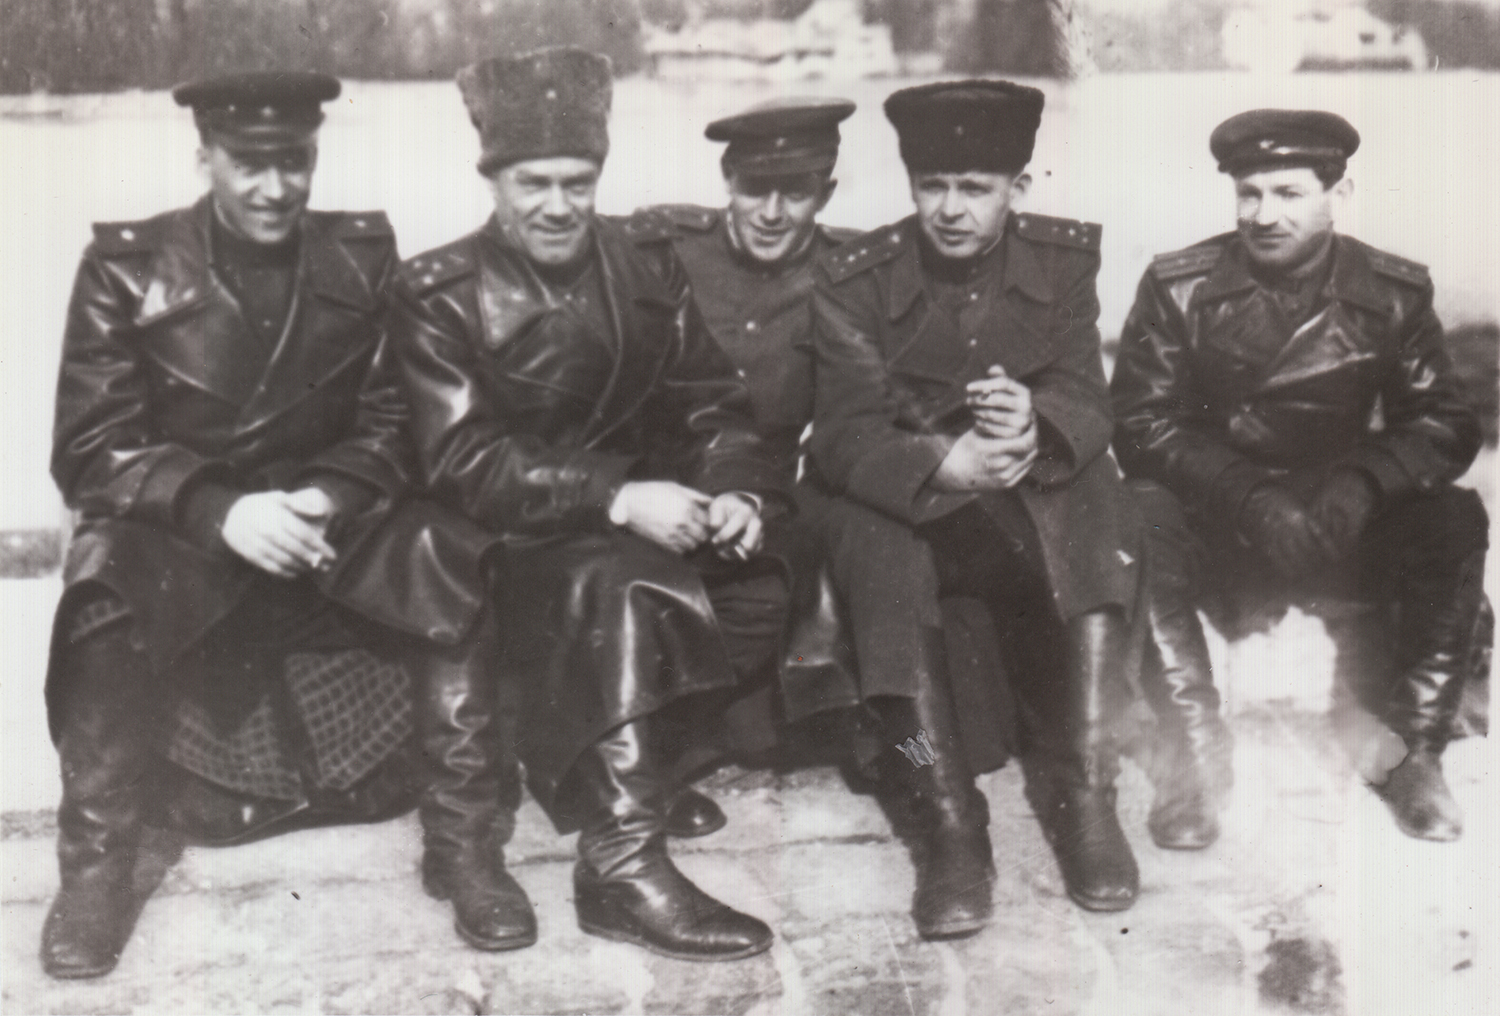 Epshtein (in the middle) with fellow soldiers. Romania, 1945